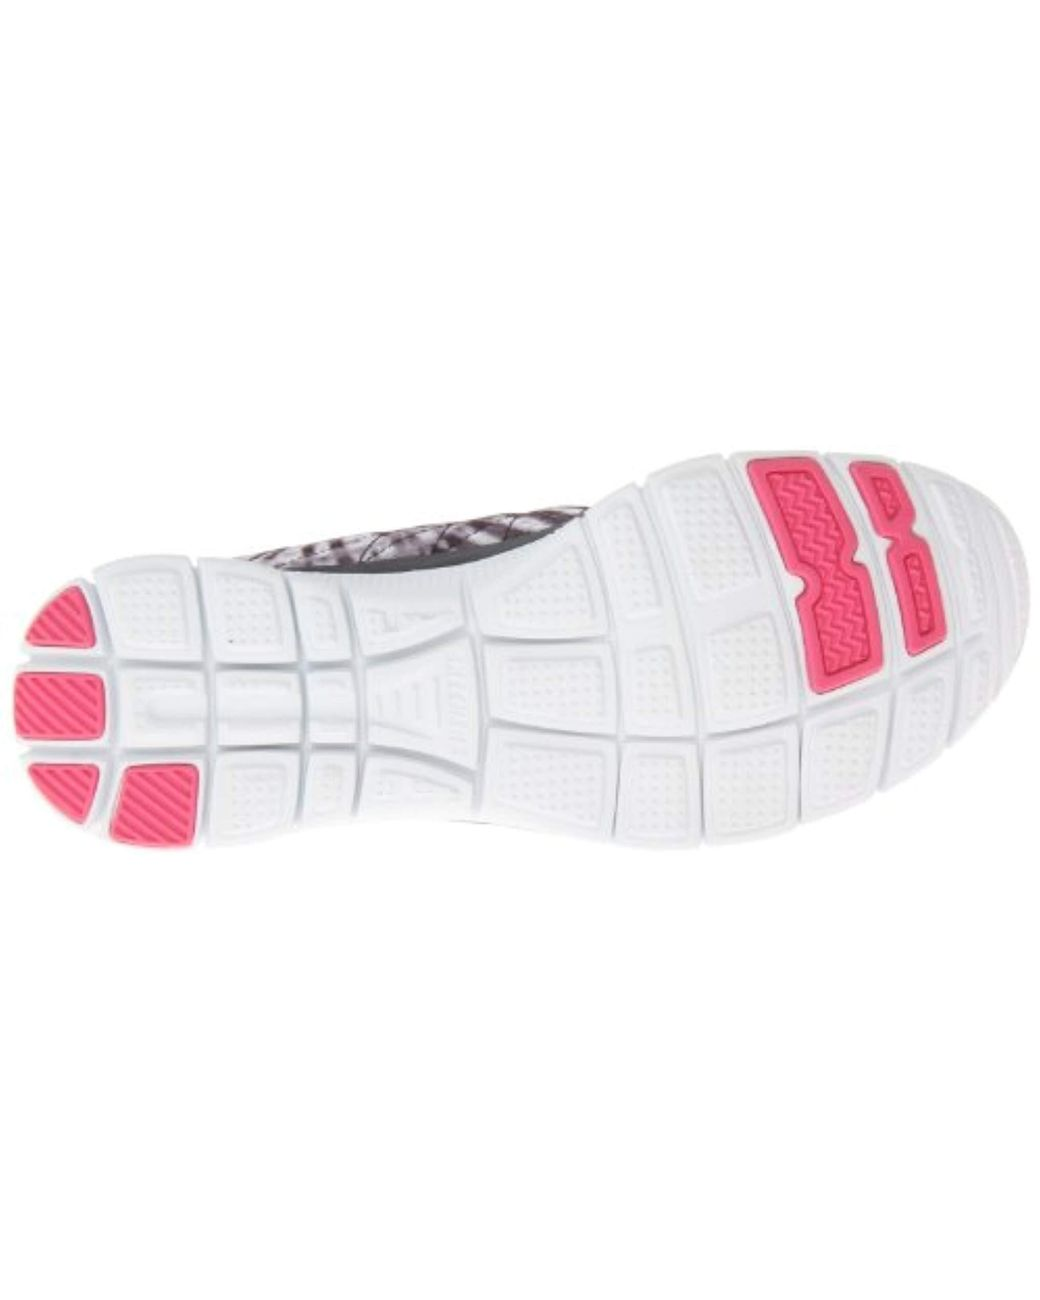 skechers flex appeal limited edition